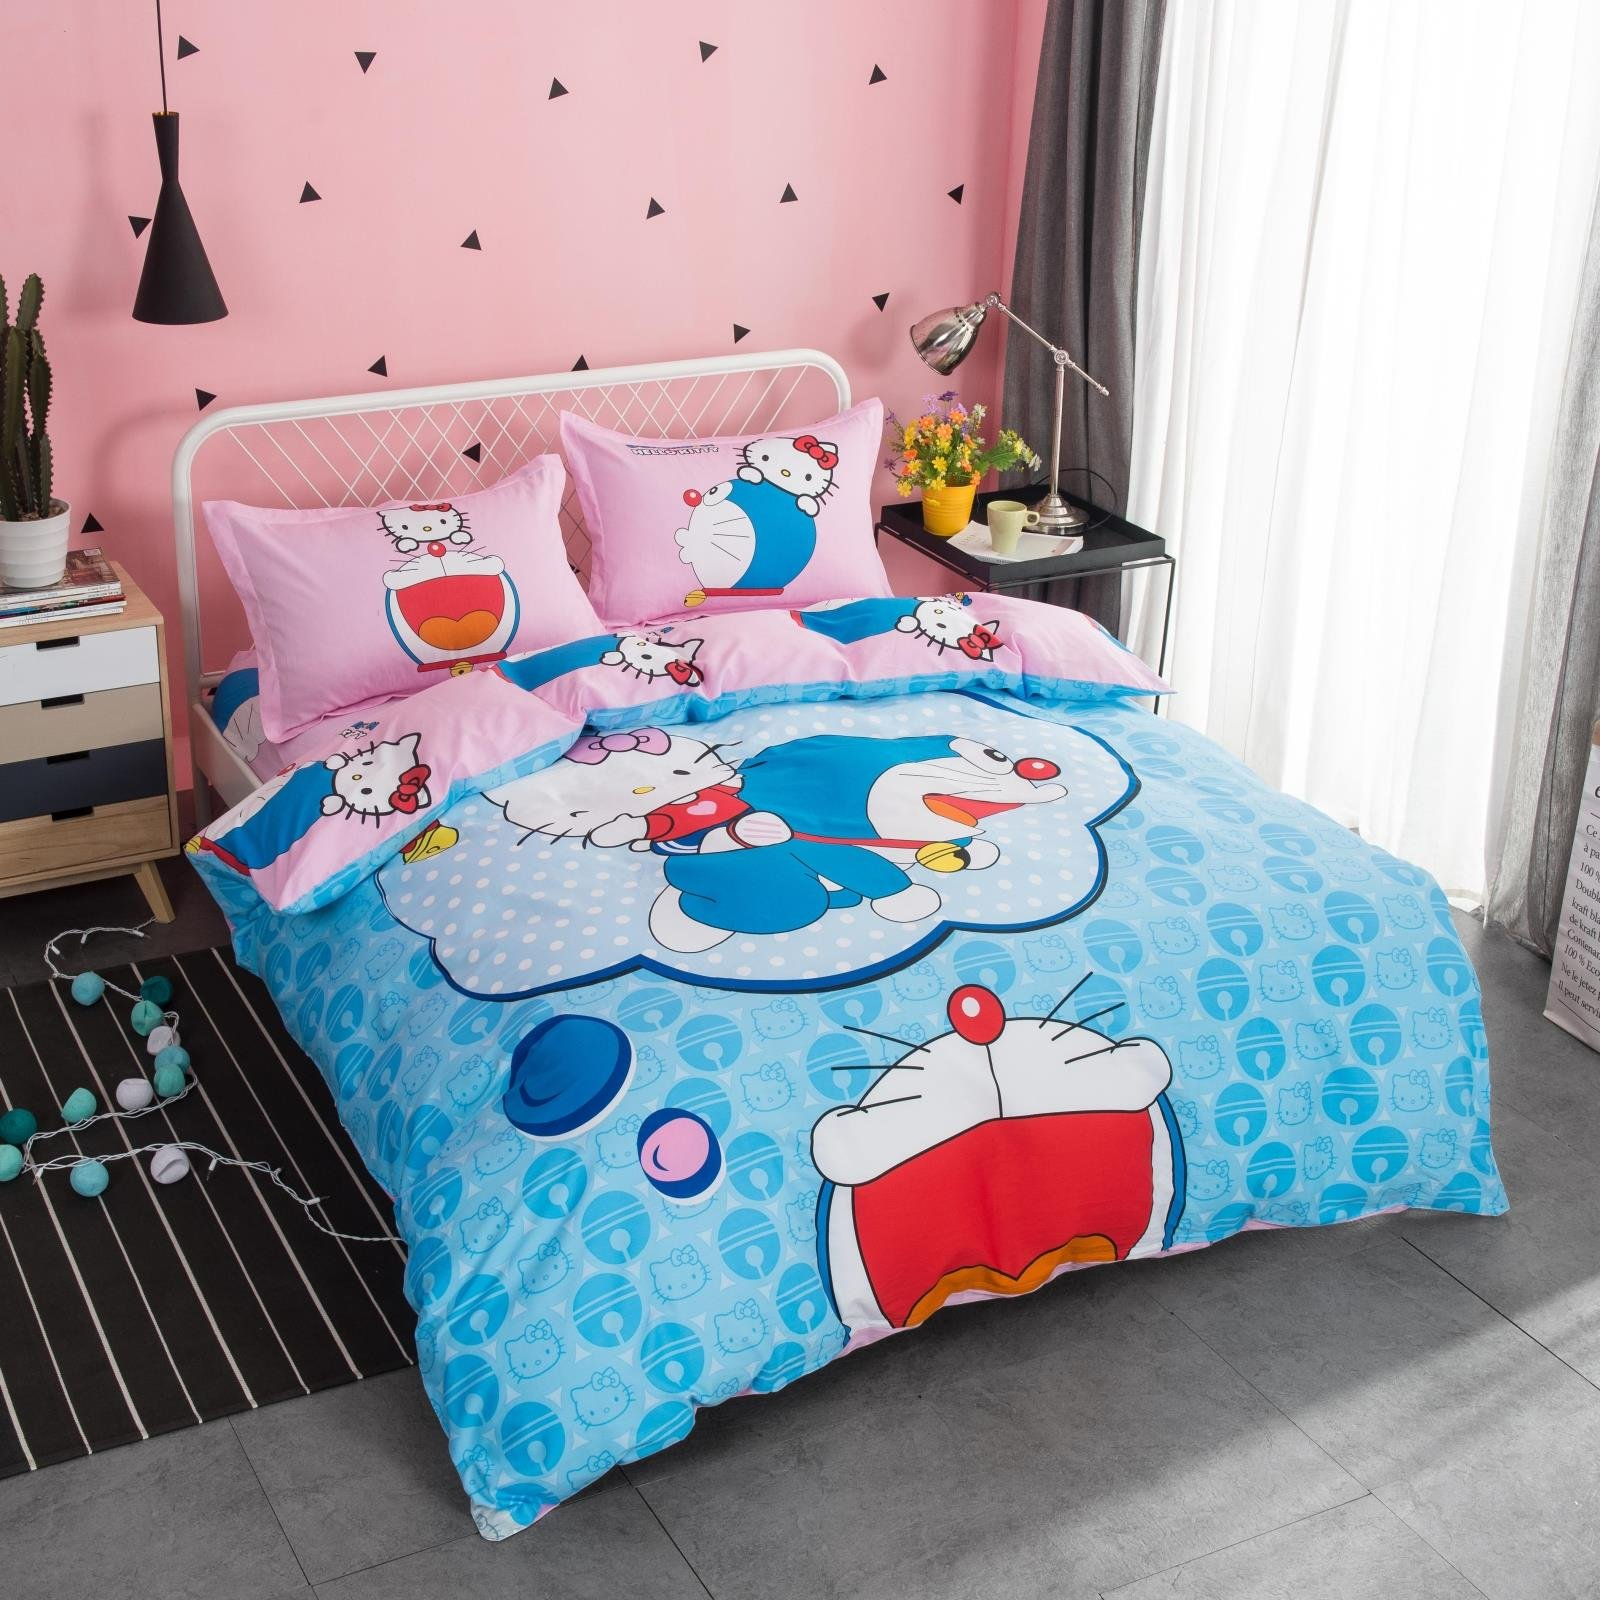 CASA 100% Cotton Kids Bedding Set Girls Doraemon Hello Kitty Duvet cover and Pillow cases and Fitted sheet,girls,4 Pieces,Queen